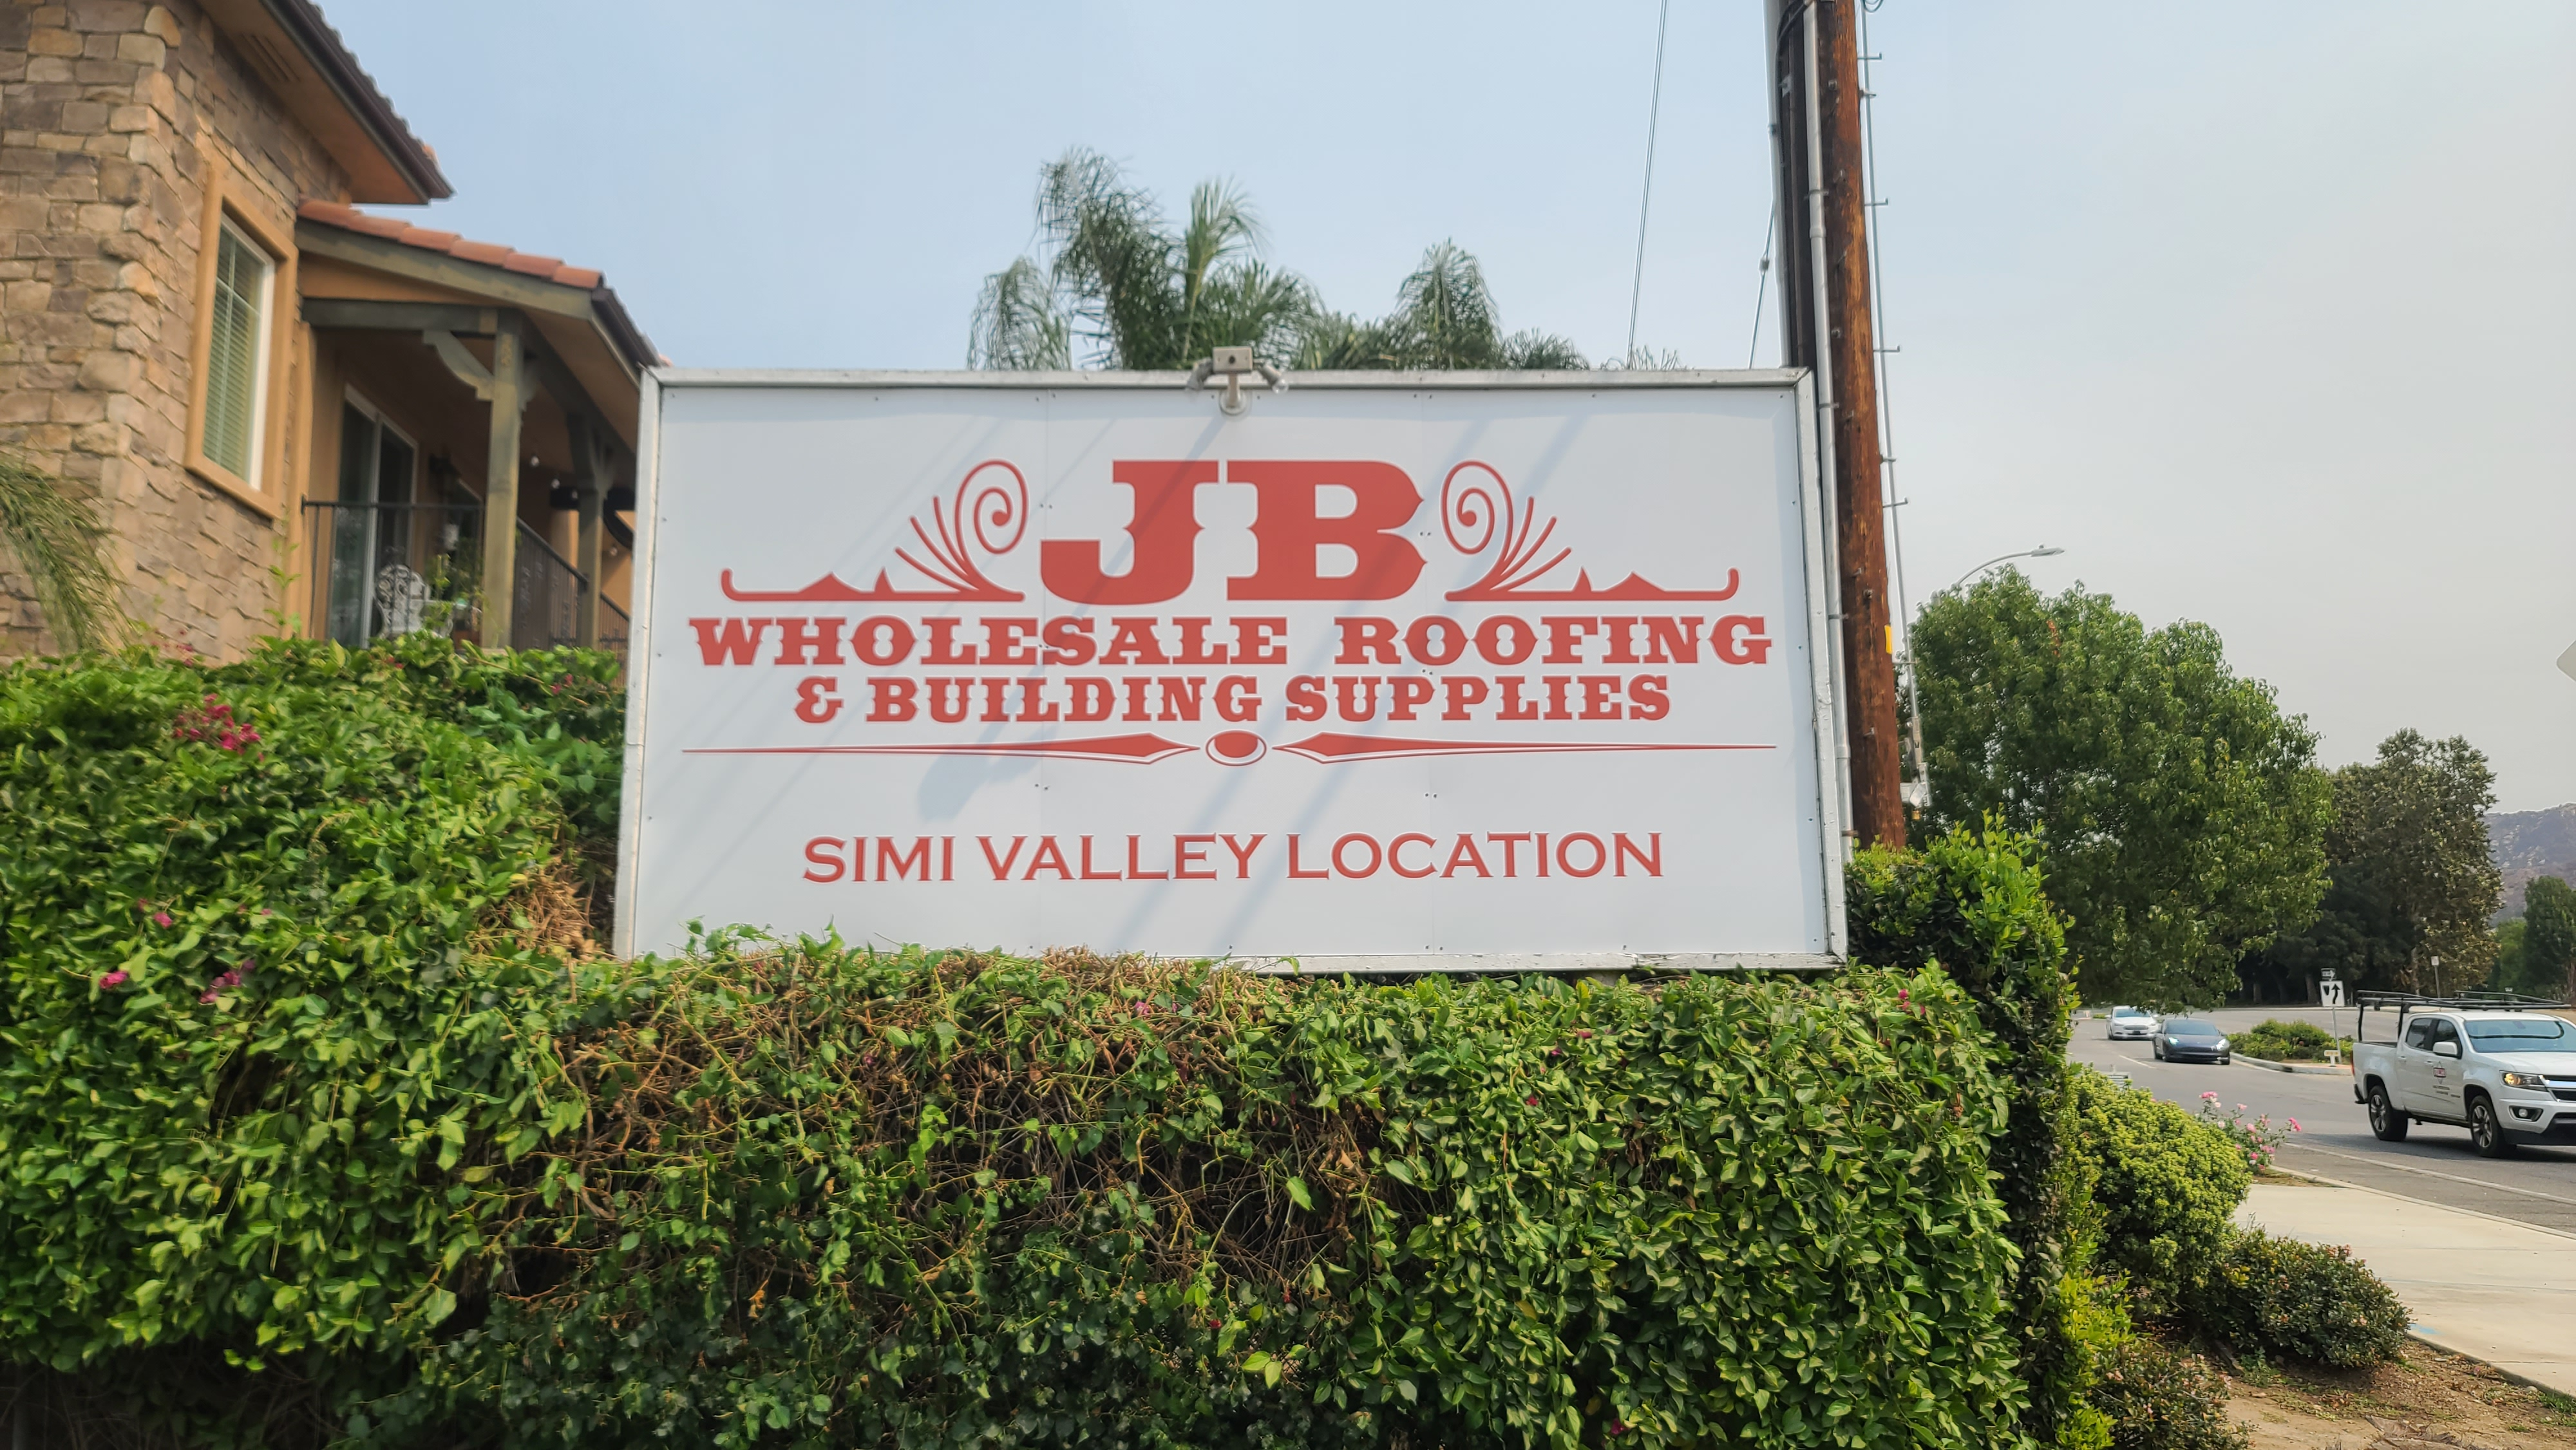 It pays to go big with signage. Like with this billboard sign for JB Wholesale Roofing & Building Supplies' Simi Valley location.